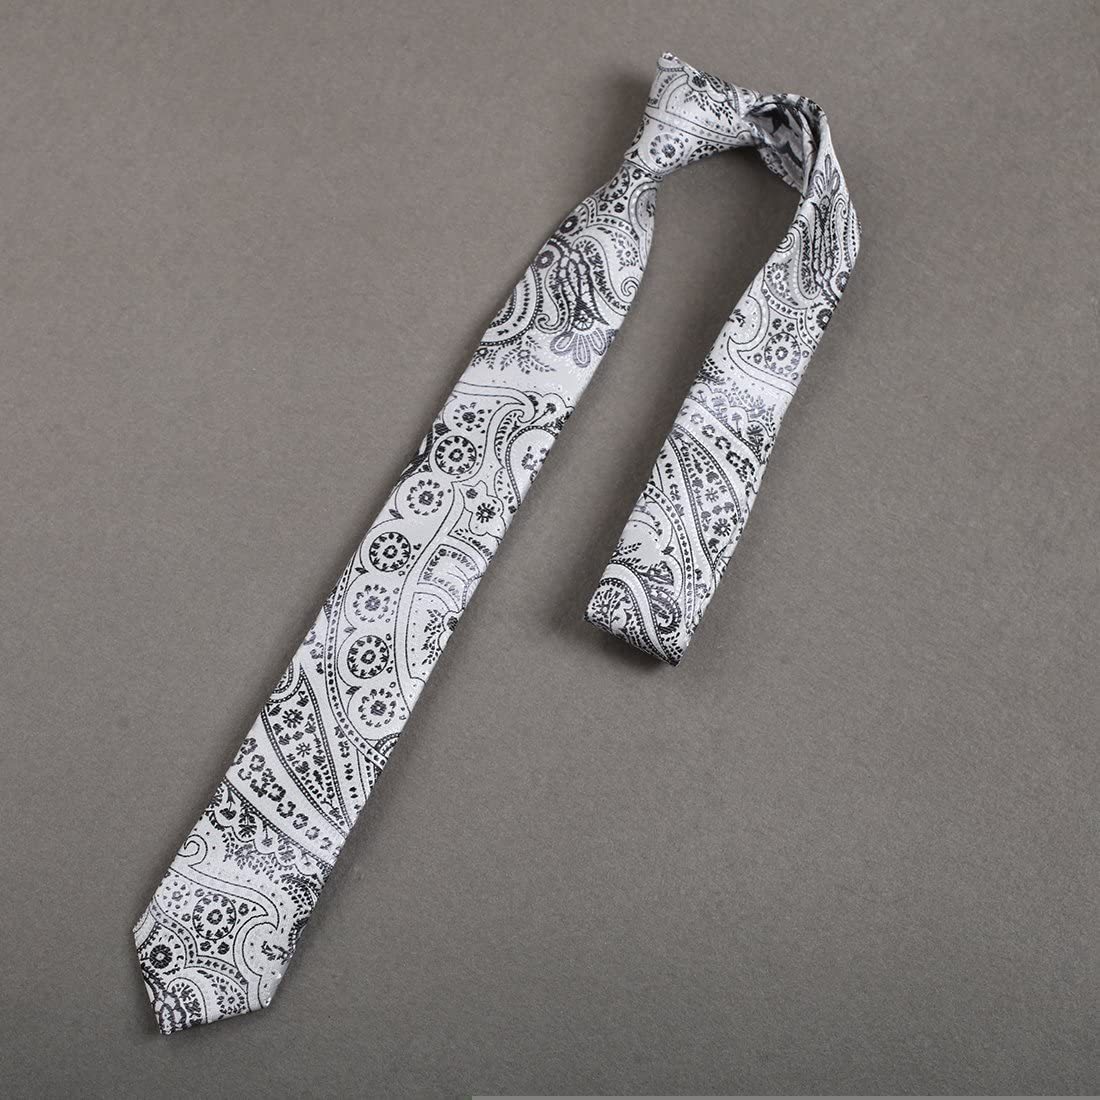 Dan Smith Mens Paisley Microfiber Skinny Tie Elegant For Dad Slim Necktie With Free Gift Box